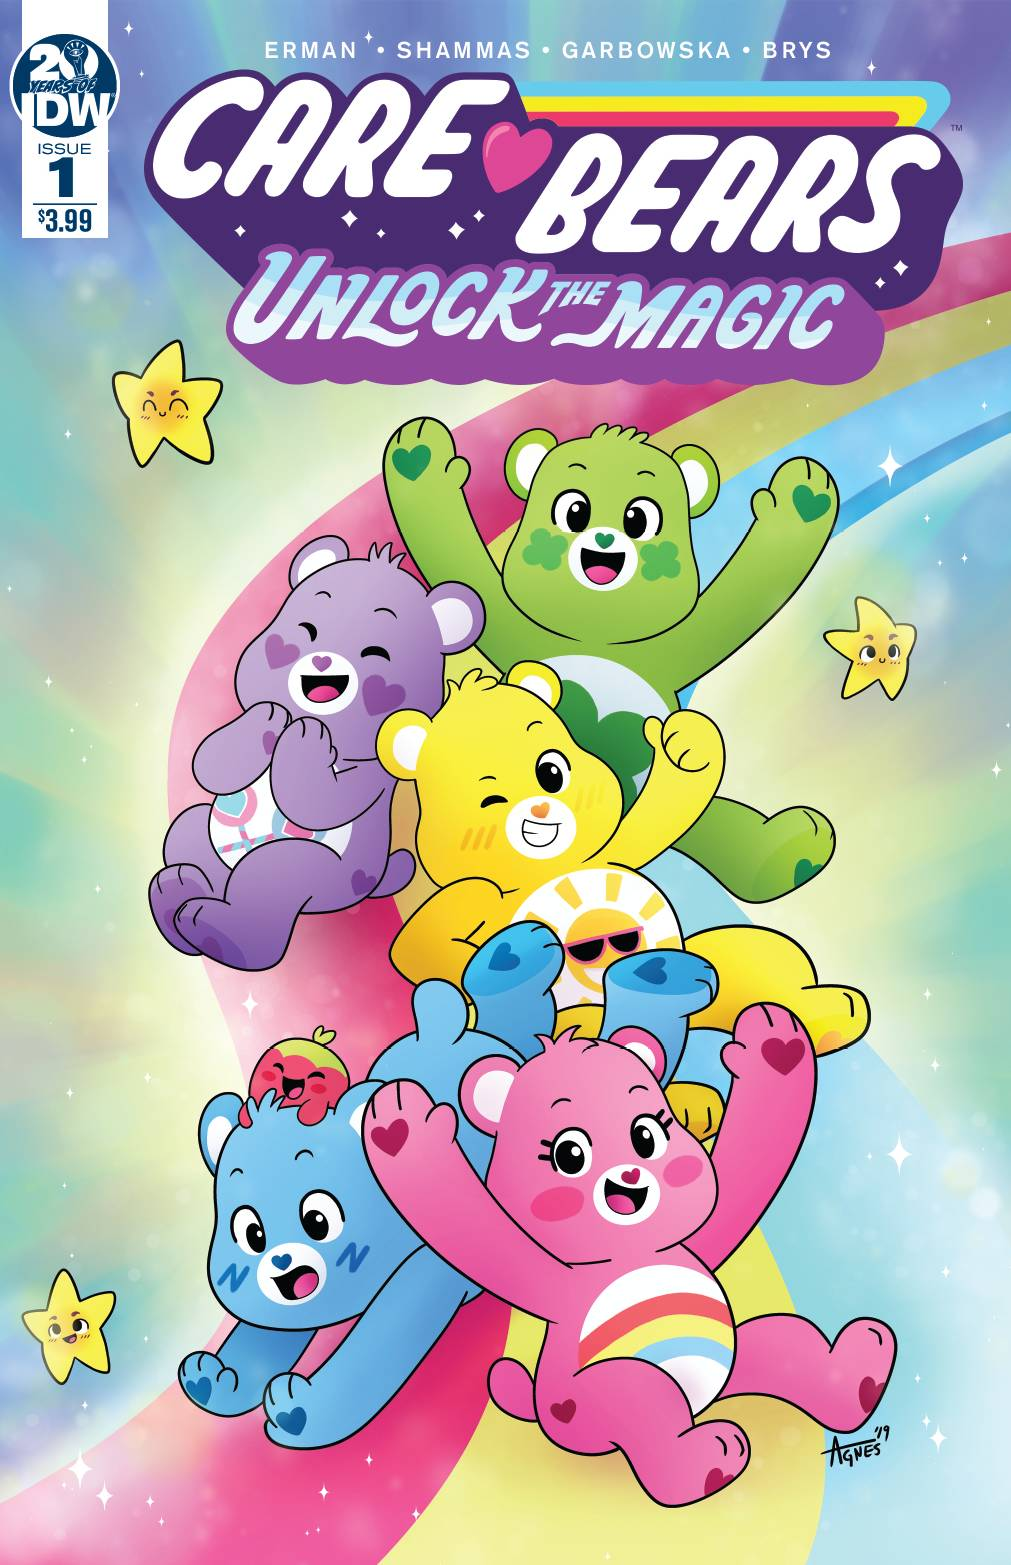 CARE BEARS 1 of 3 CVR A GARBOWSKA.jpg